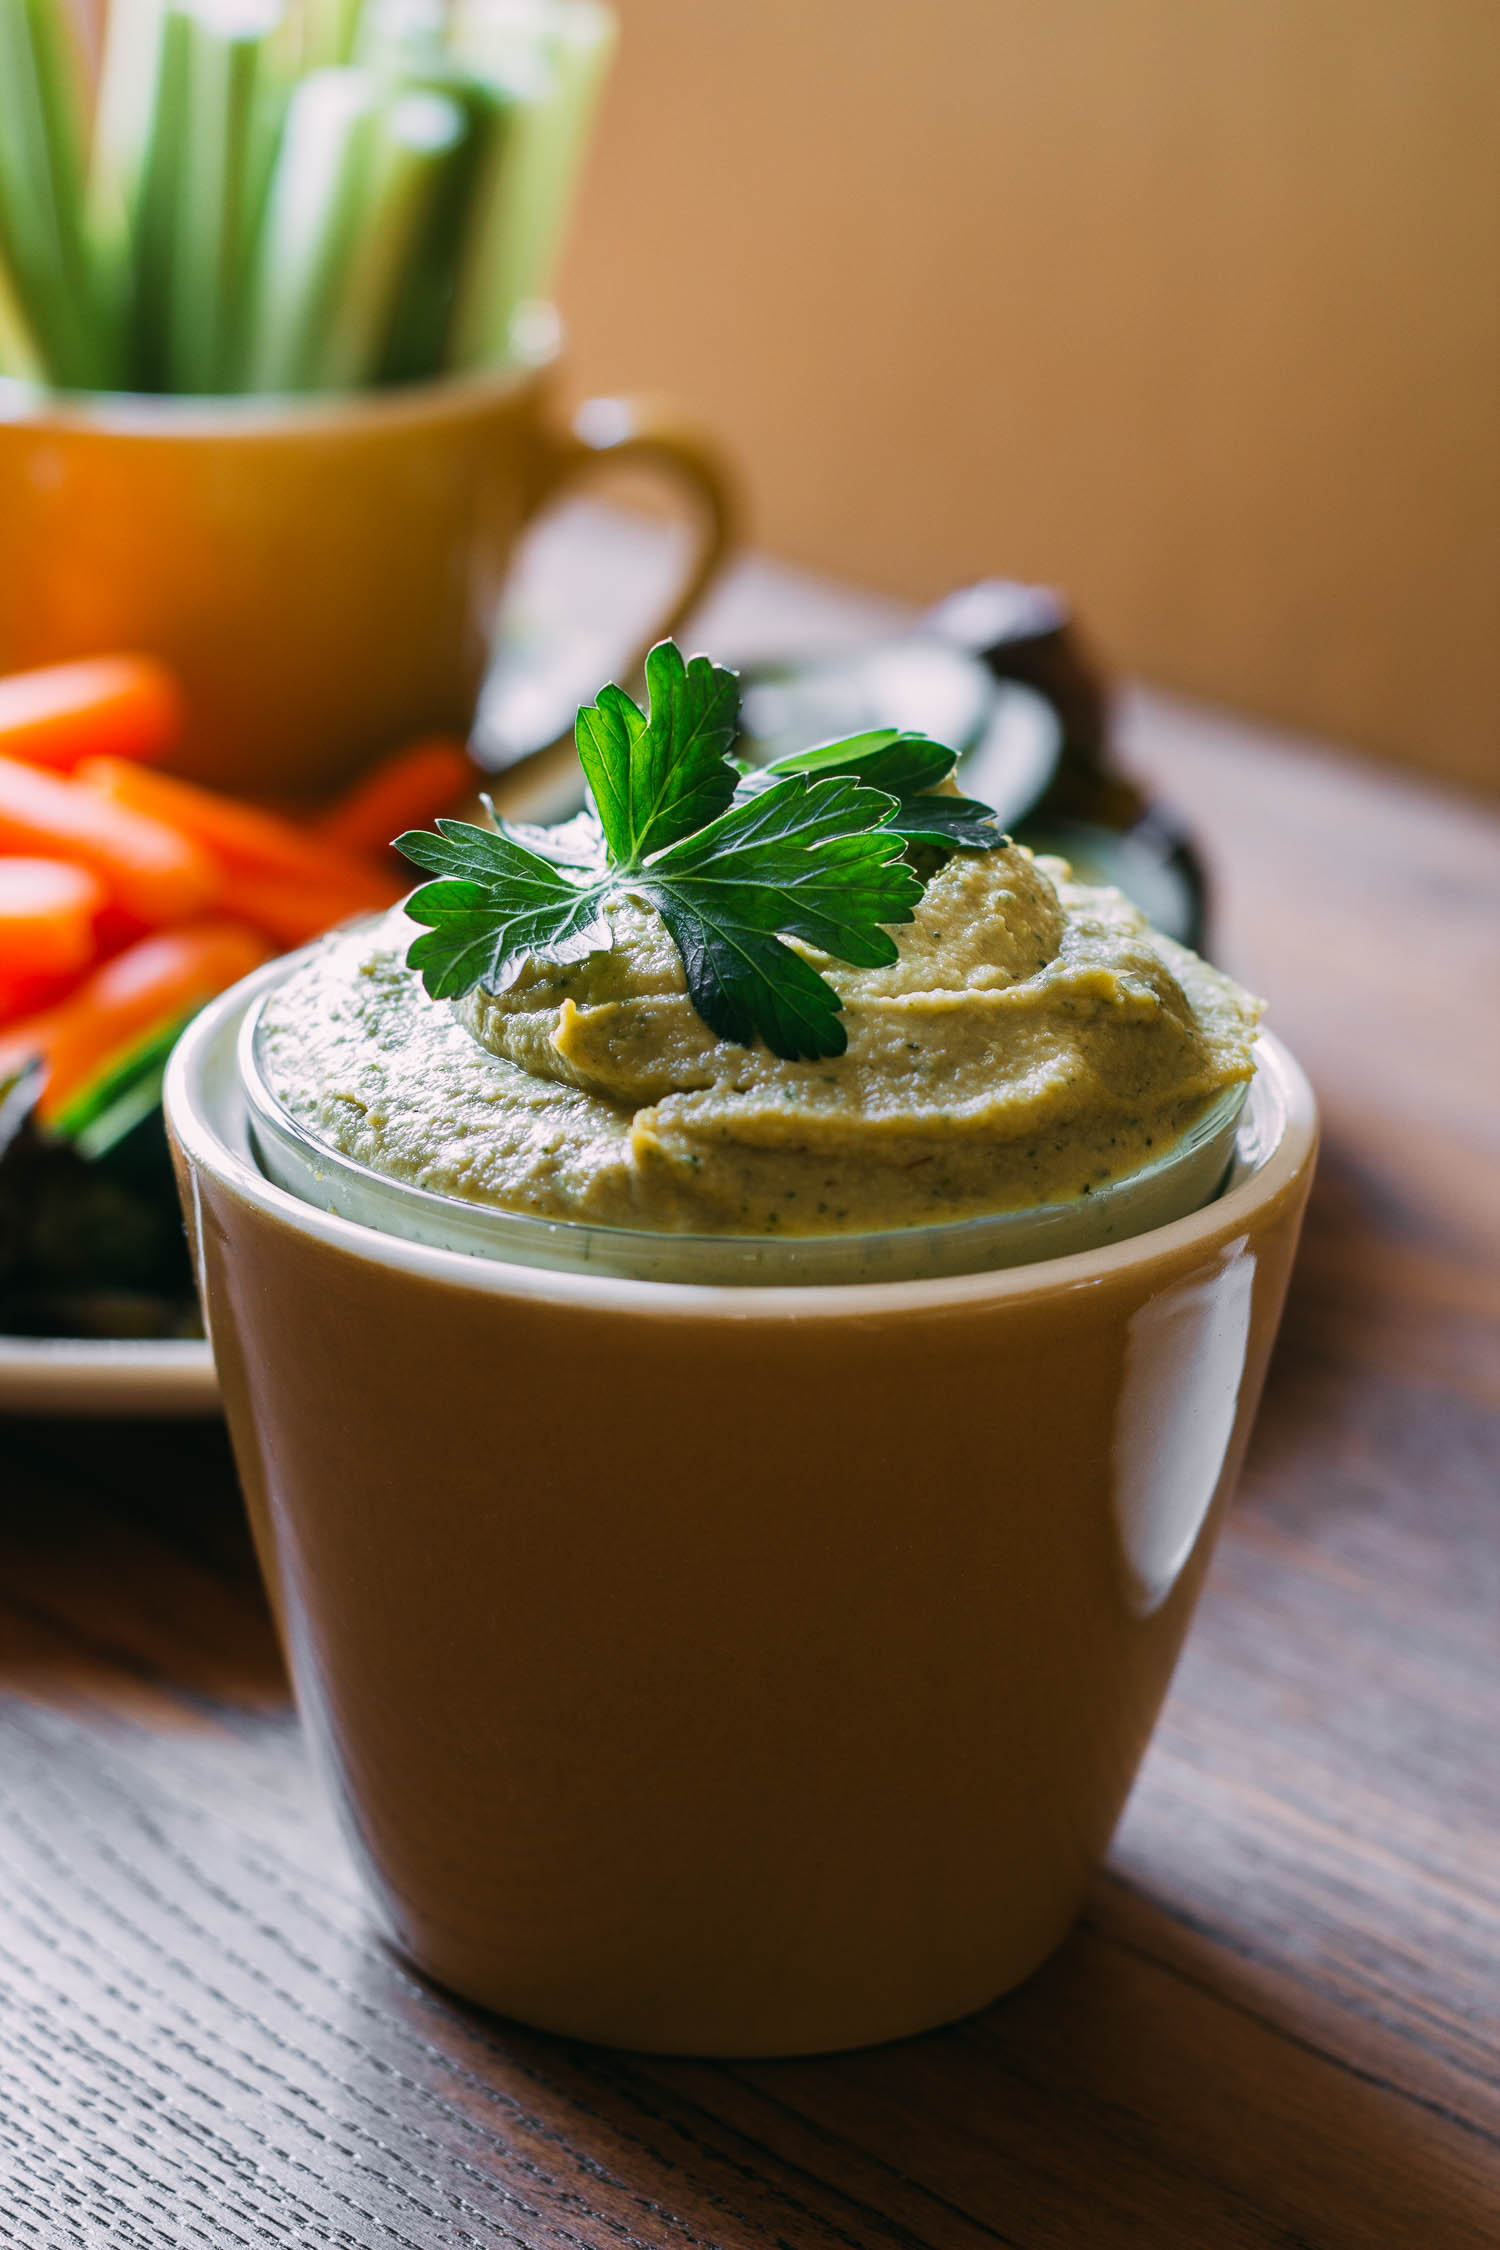 Parsley & Thyme Cashew Cream Cheese #recipe #spread #dip #sauce #nuts